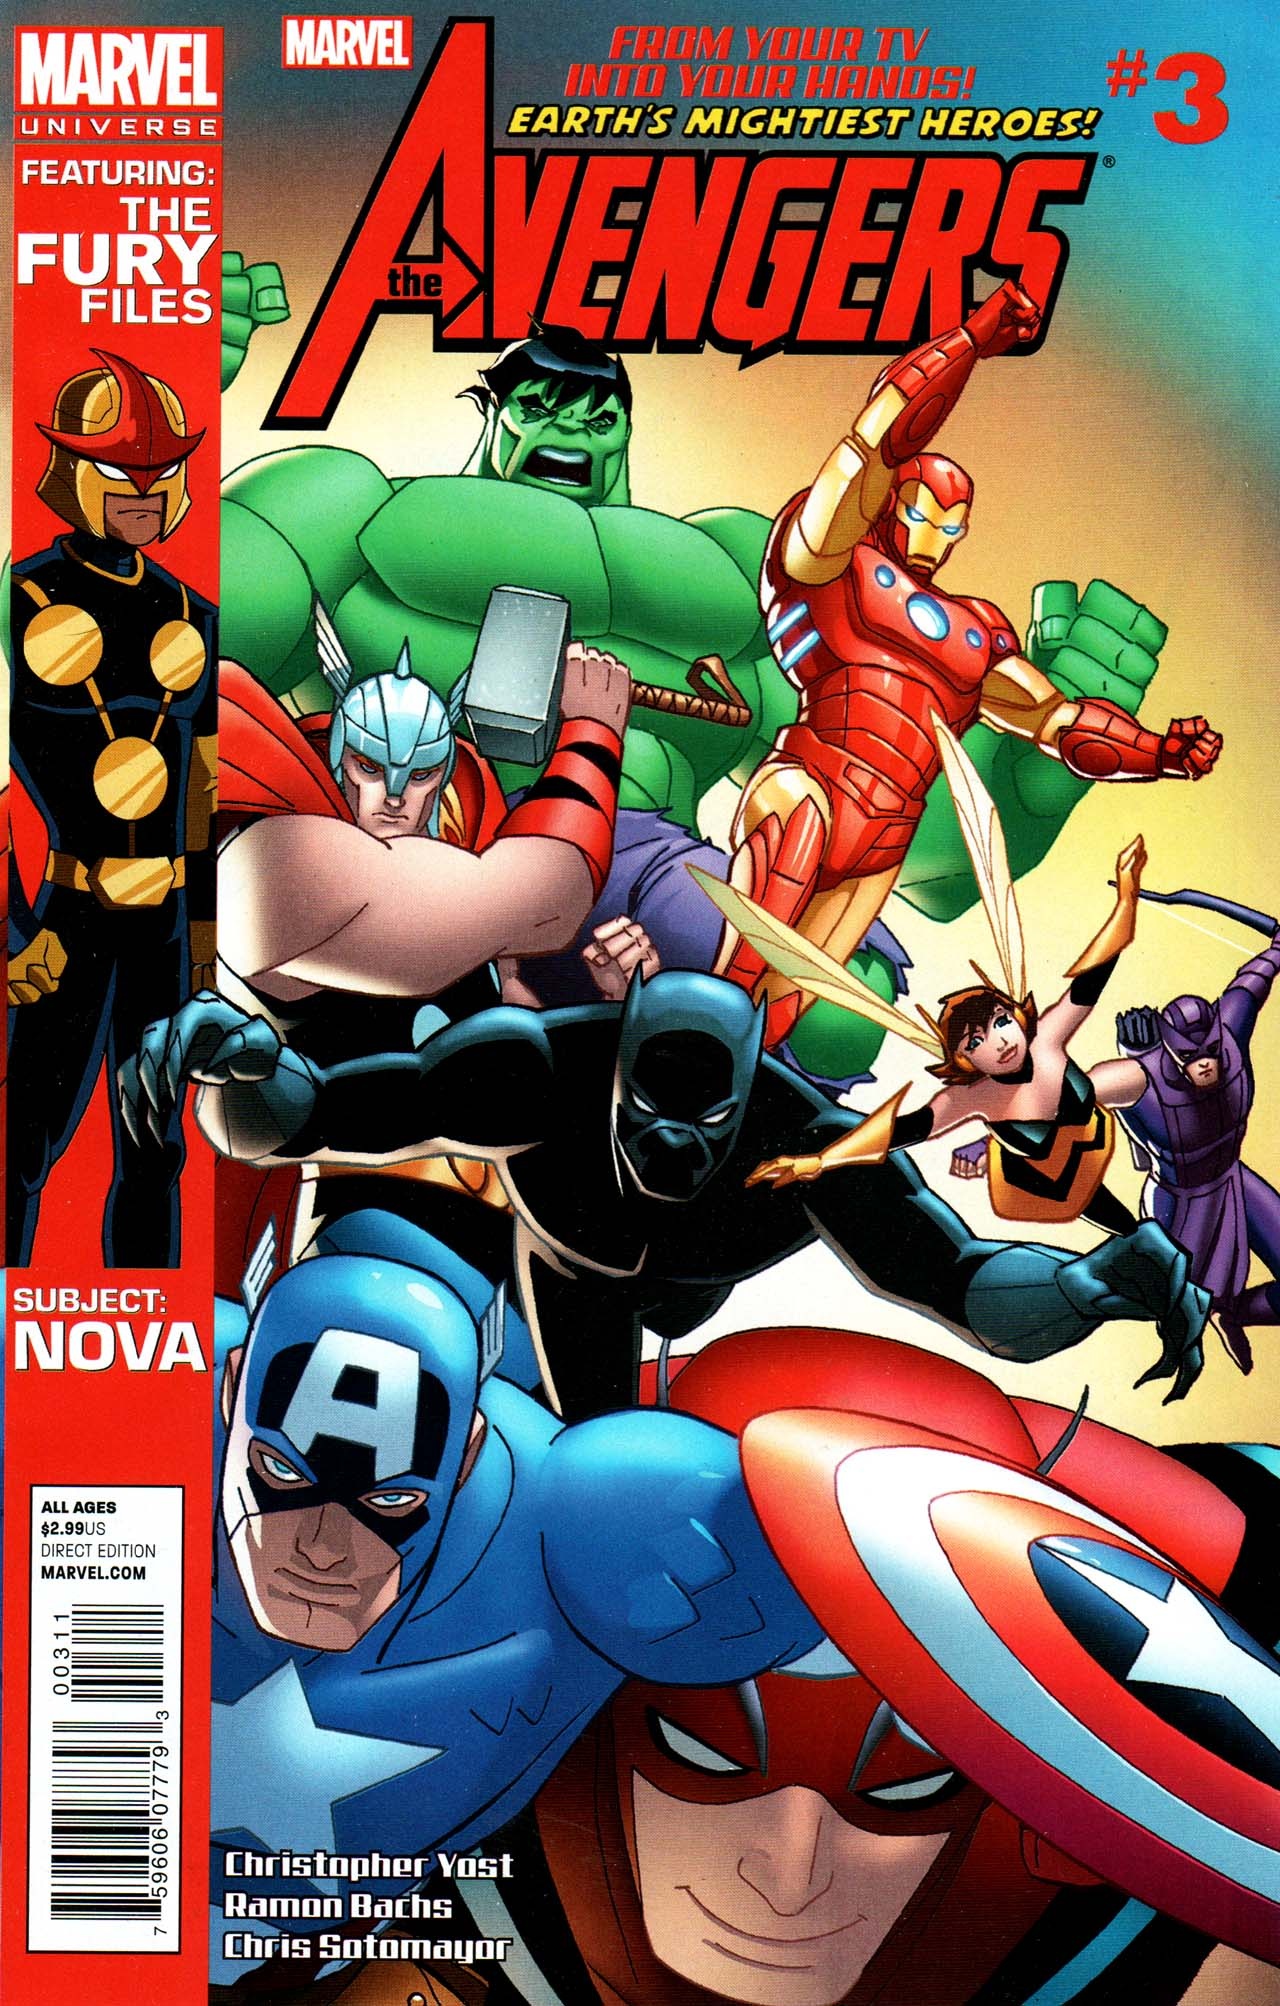 Marvel Universe: Avengers - Earth's Mightiest Heroes Vol 1 3